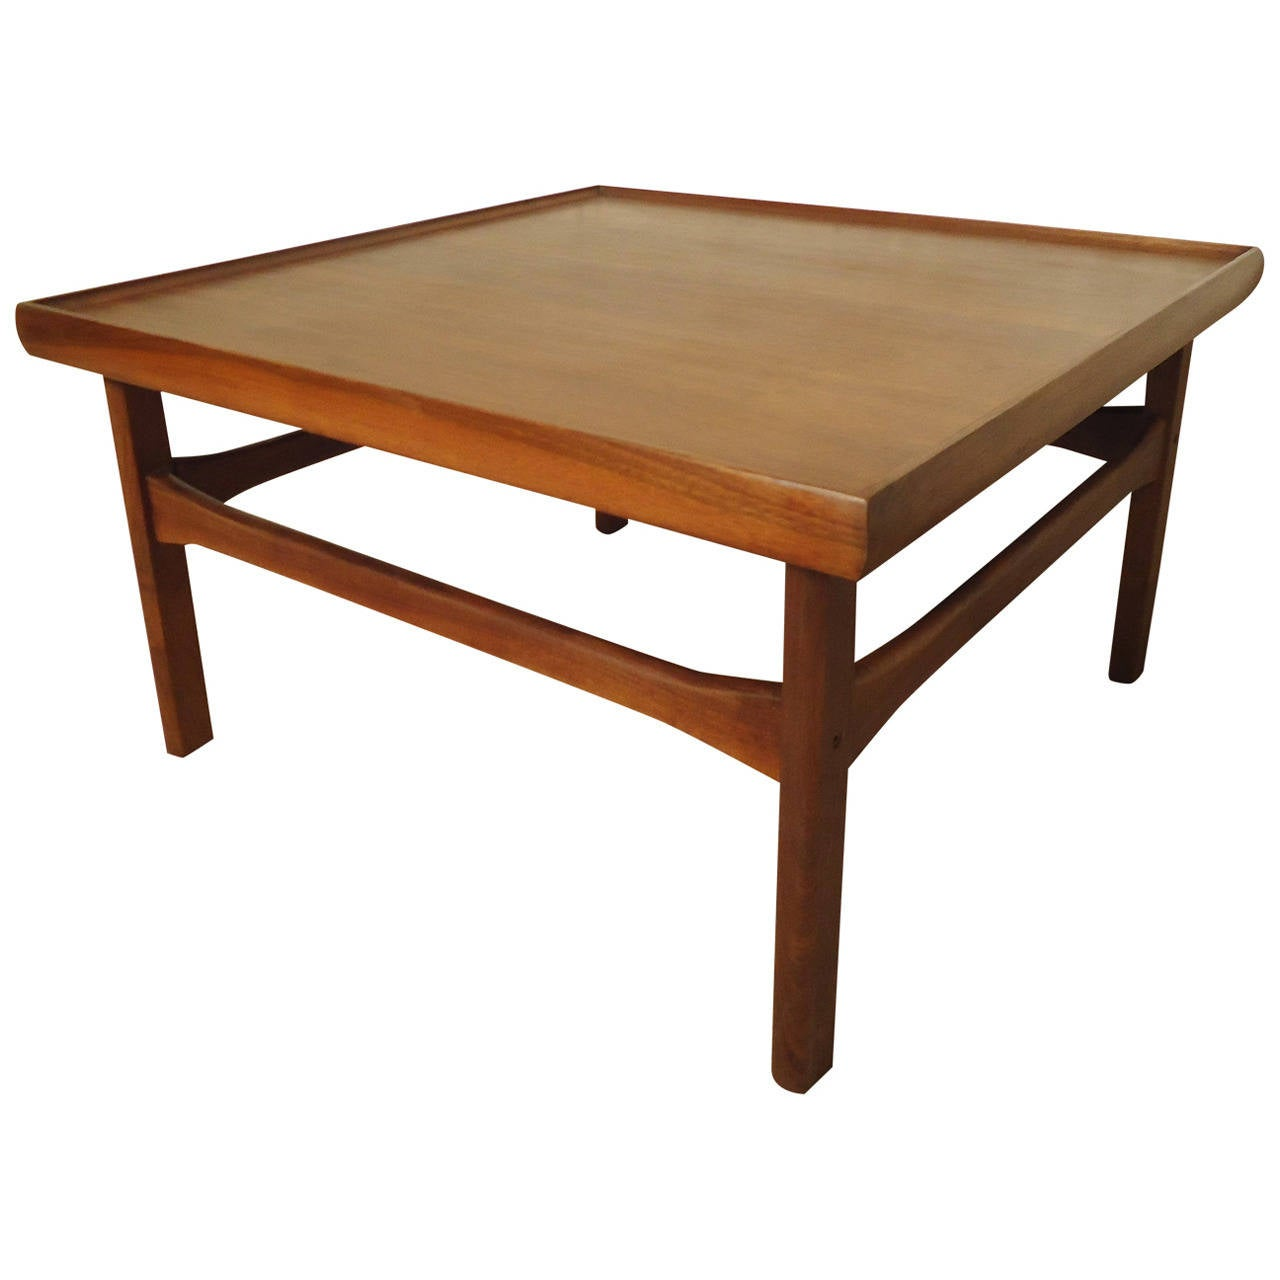 Mid century modern square coffee table for sale at 1stdibs for Modern coffee table sale